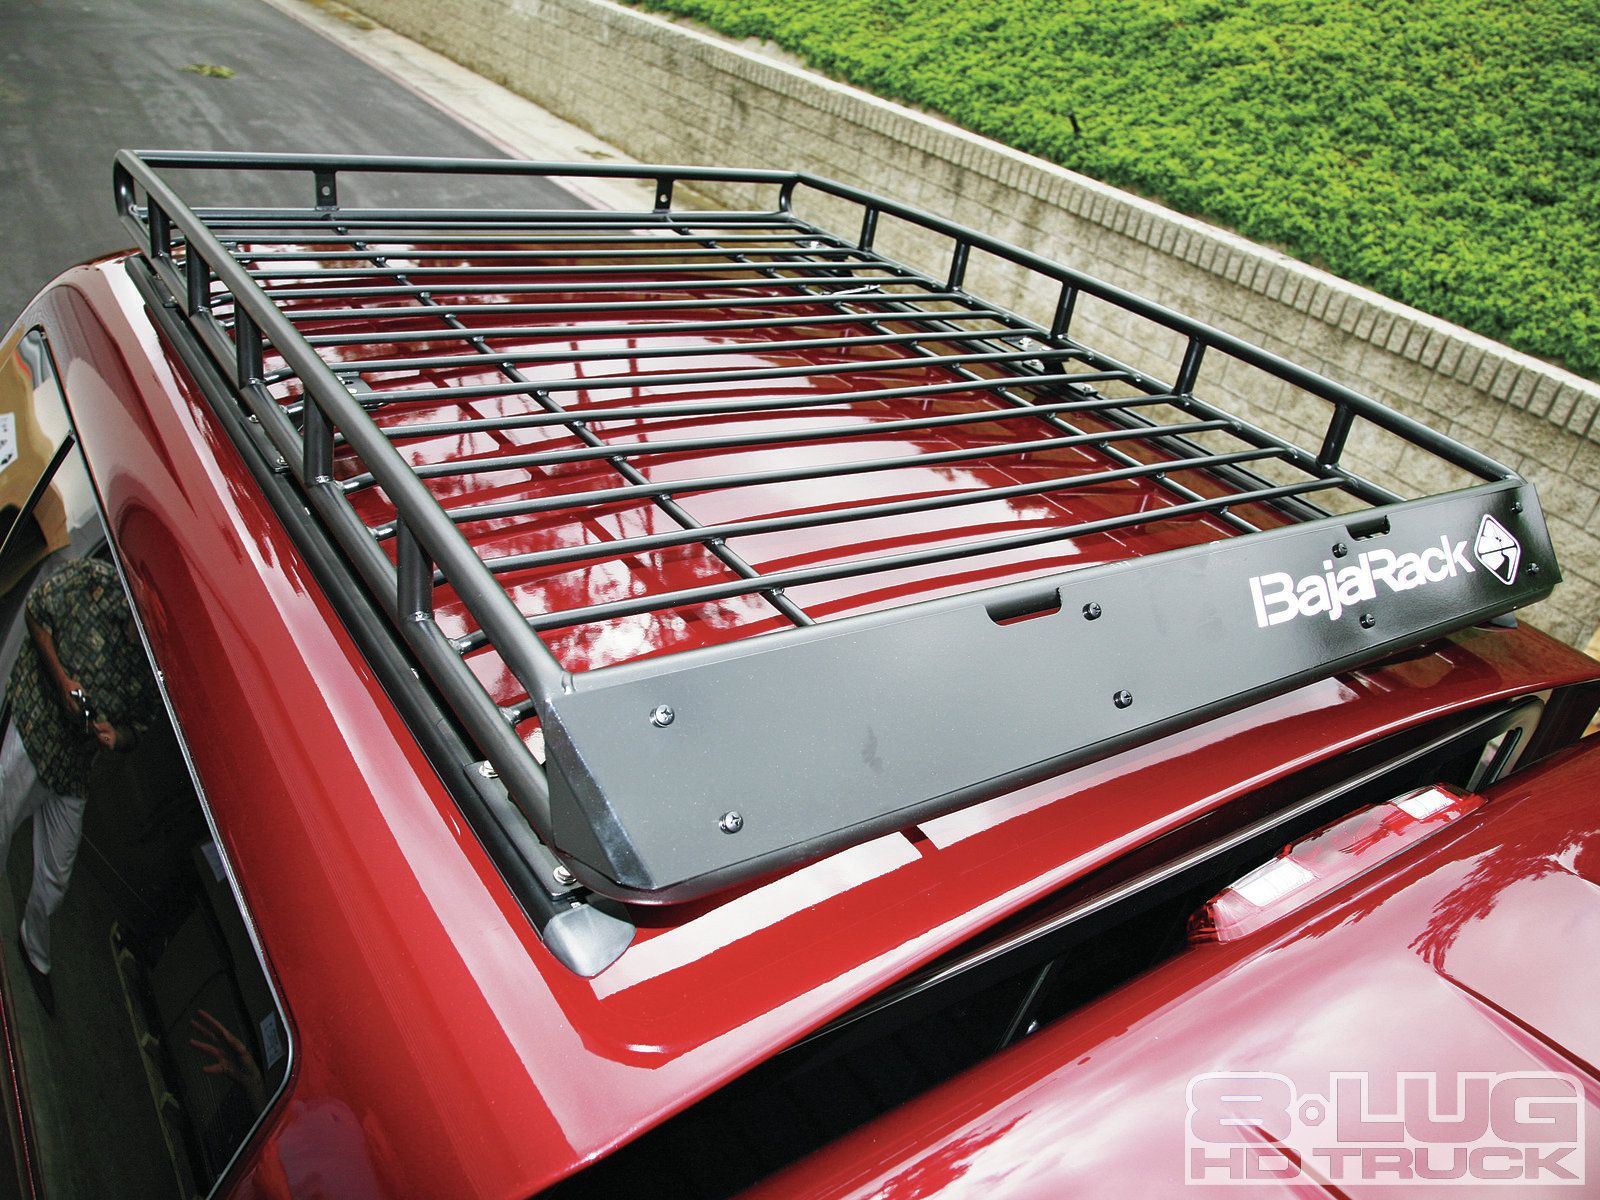 Truck Canopy Racks 1202 8l 01 2bbajarack Roof Rack Installation 2bbajarack Installed Jpg Roof Rack Truck Canopy Roof